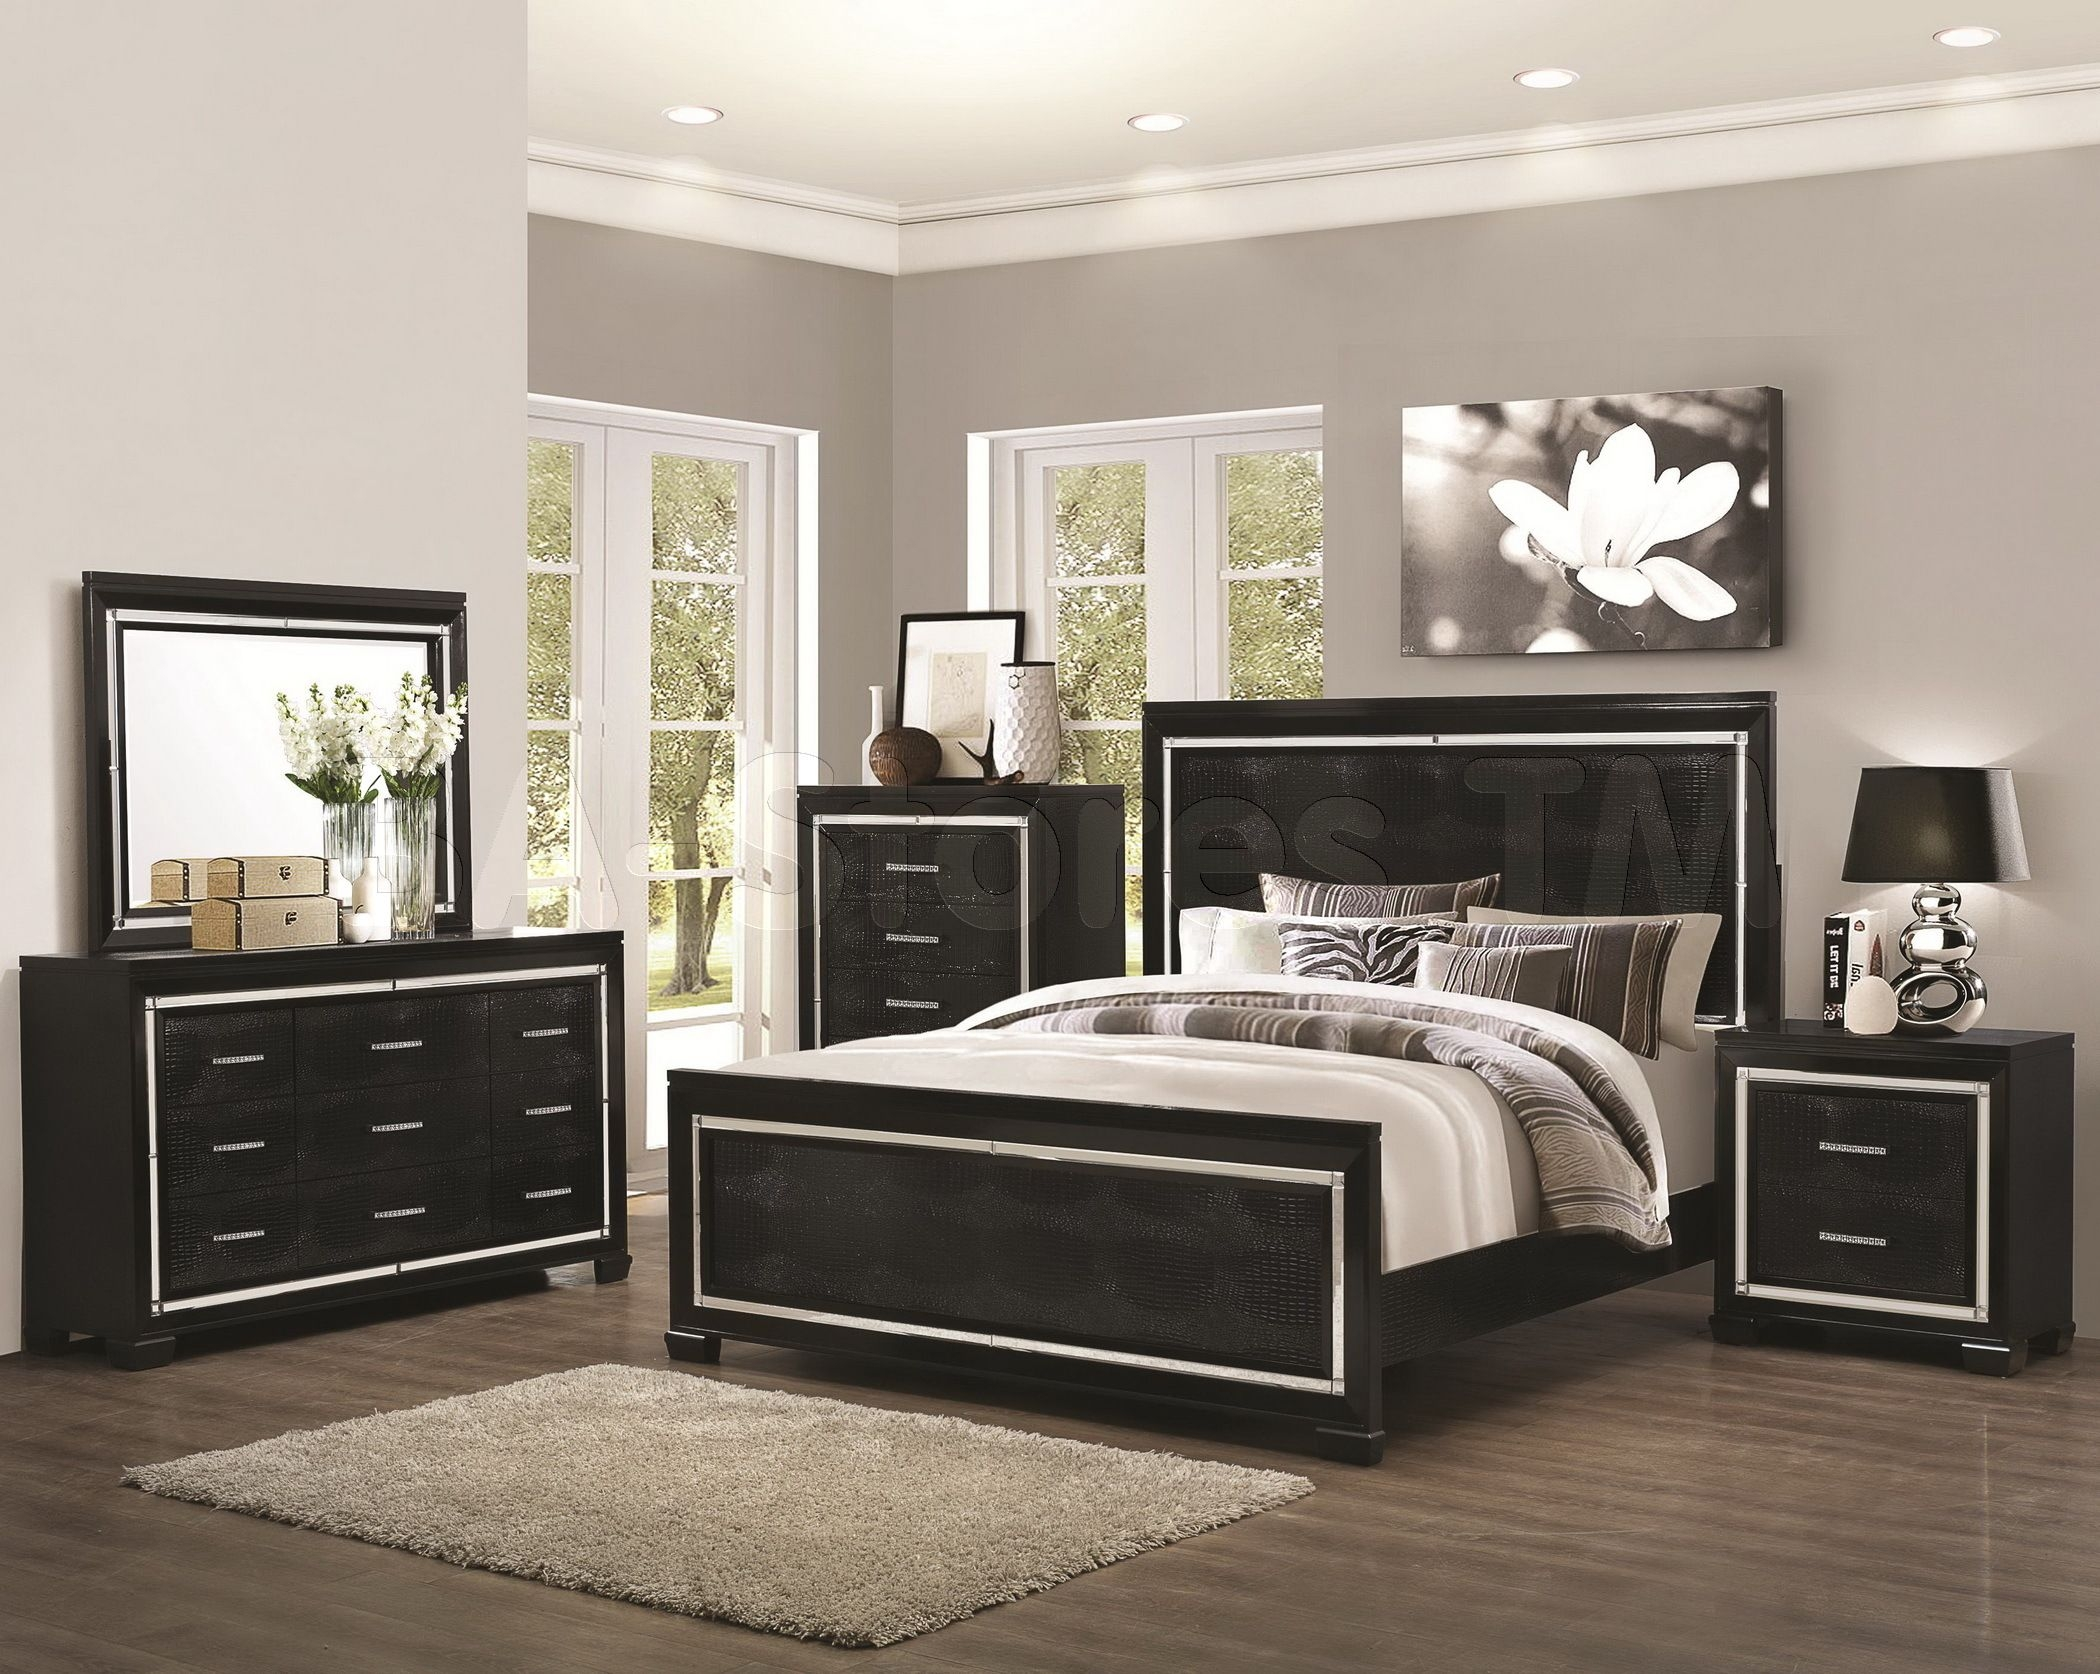 Black And Mirrored Bedroom Furniture  Hawk Haven